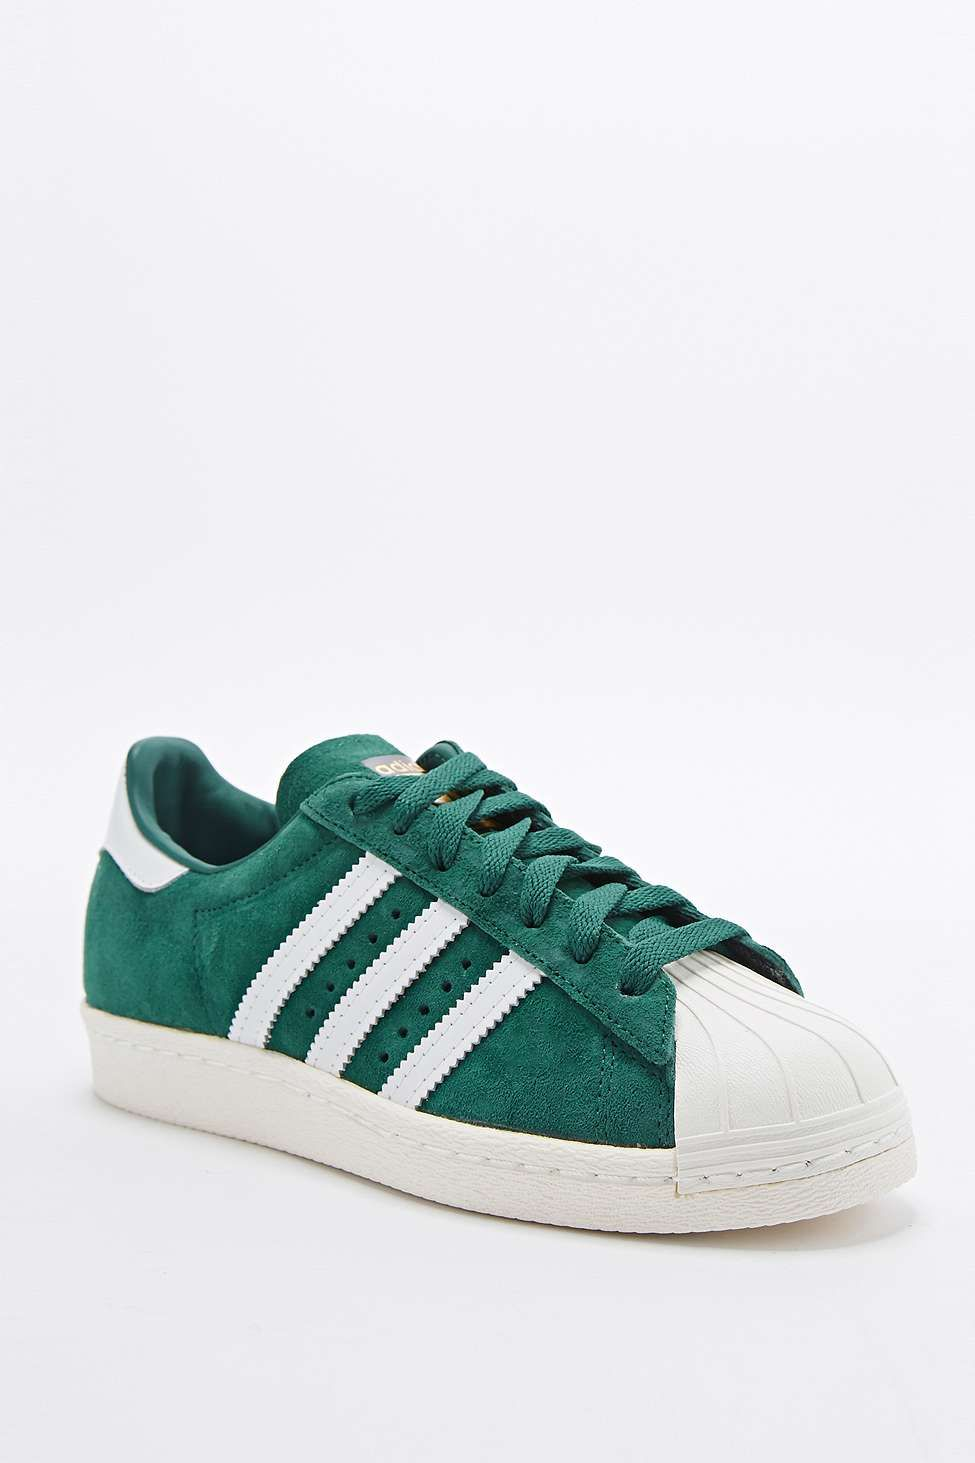 adidas Originals Superstar 80s Delux Suede Trainers in Green